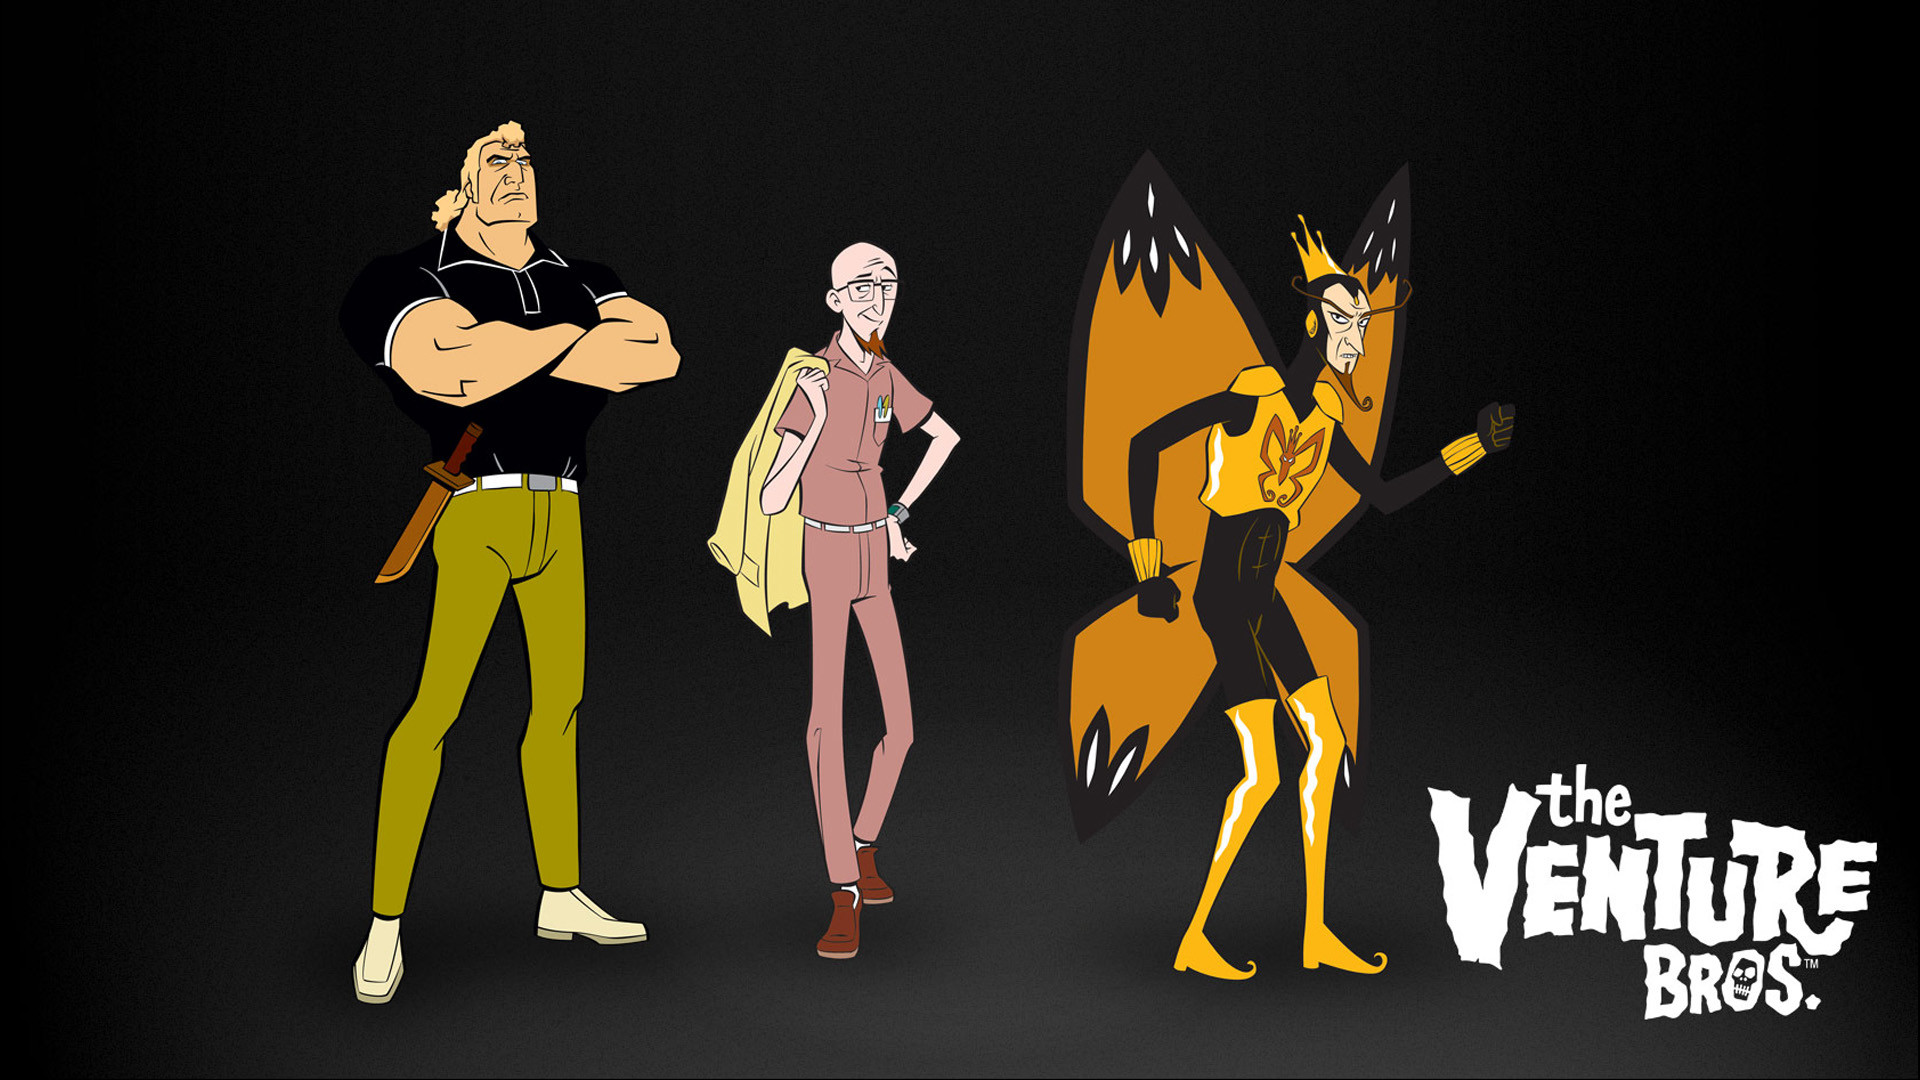 1920x1080 The Venture Bros., crowns, butterfly wings, The Monarch, Brock Samson -  Free Wallpaper / WallpaperJam.com